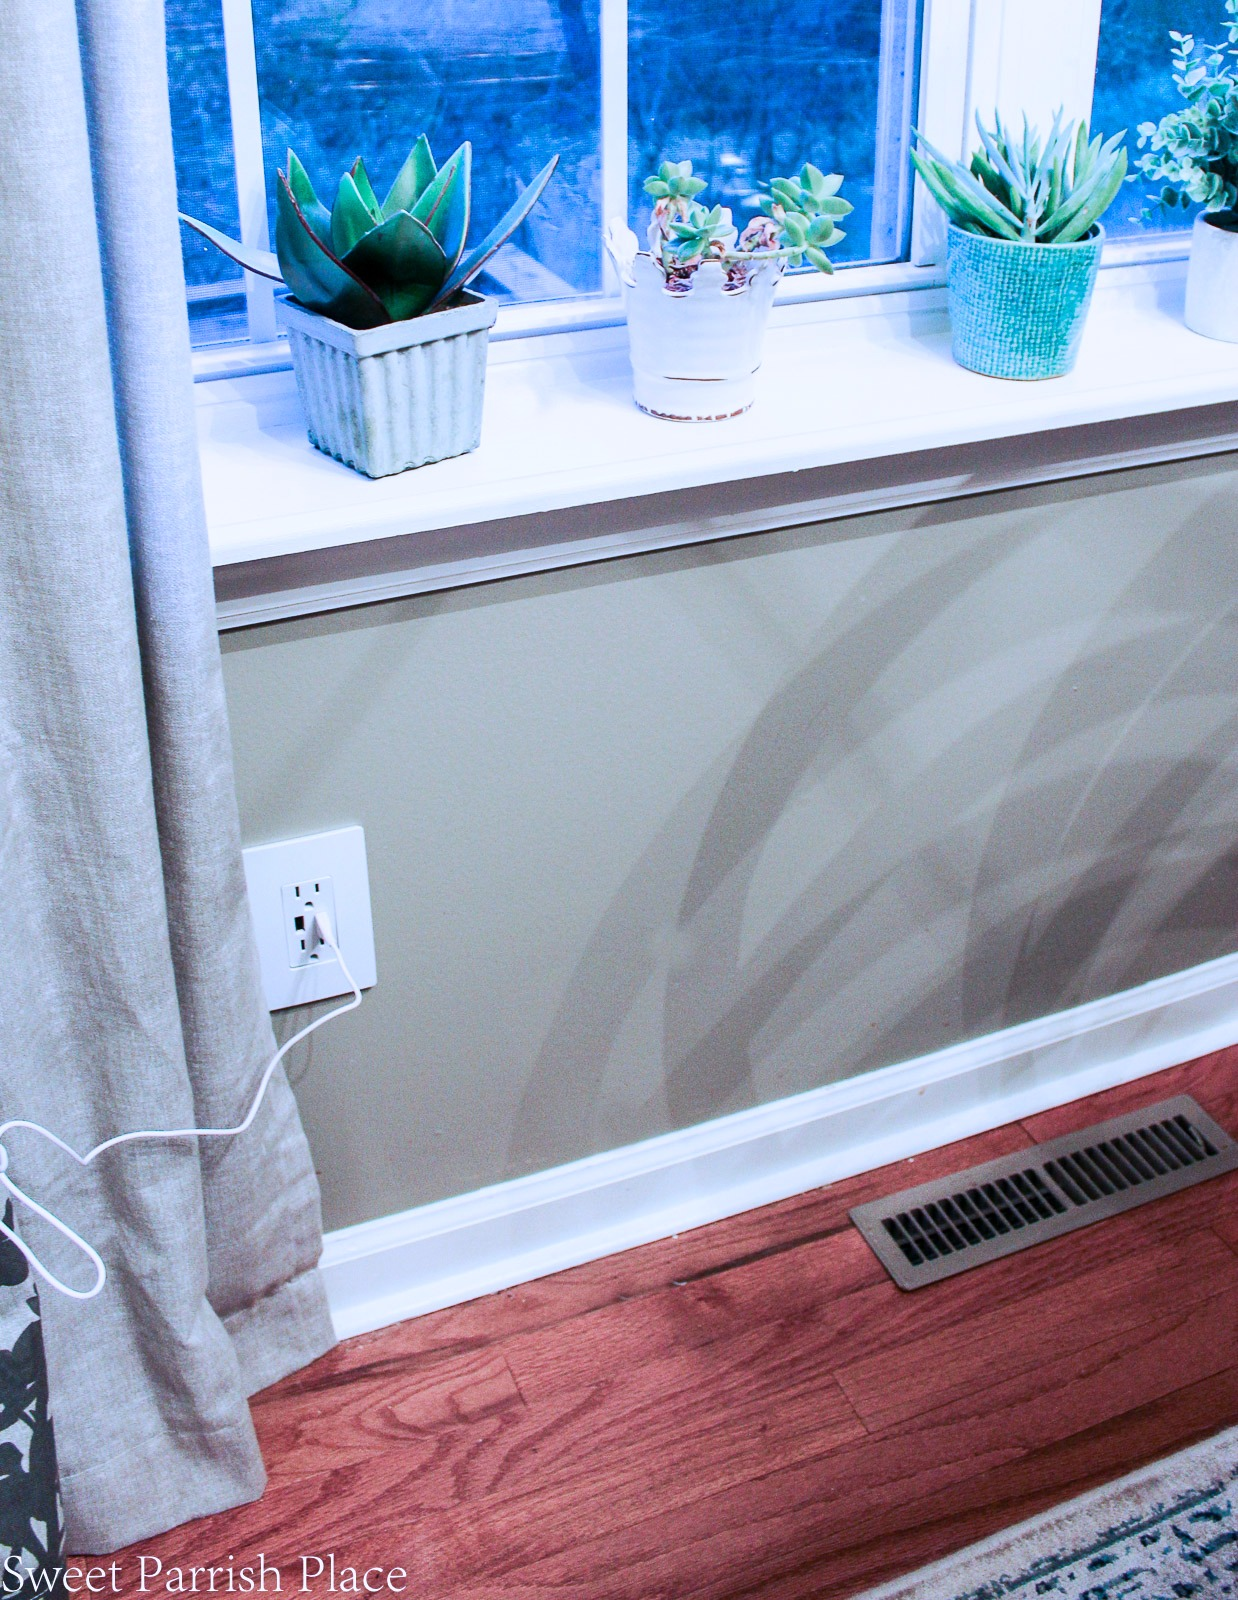 How To Update Electric Outlets And Wall Plates • Sweet Parrish Place